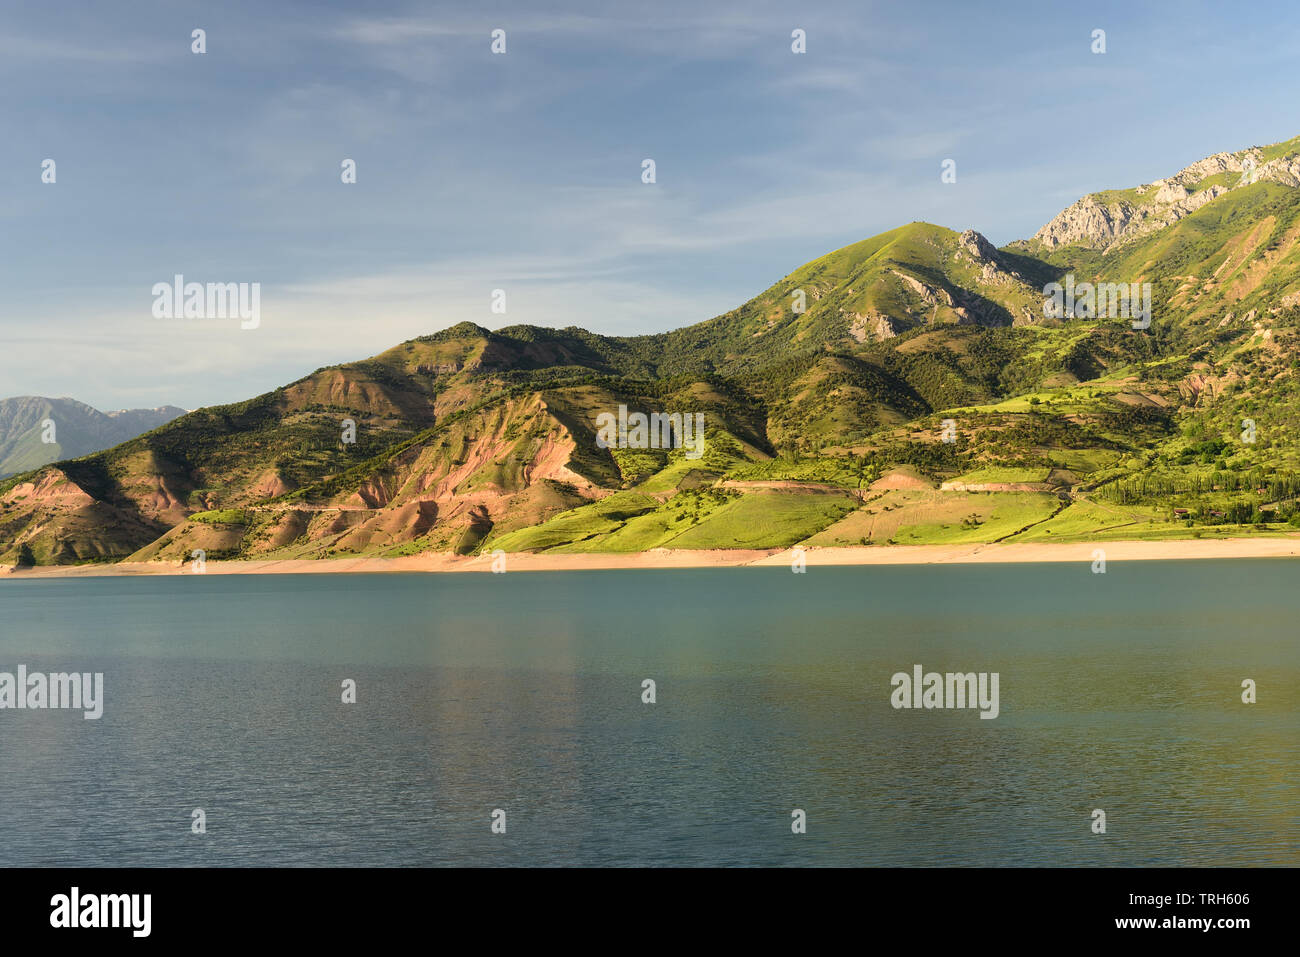 Landscape of the lake and the mountains in Ugam - Chatkal National Park, holiday destination  of hiking and adventure-sport located near the Tashkent, Stock Photo